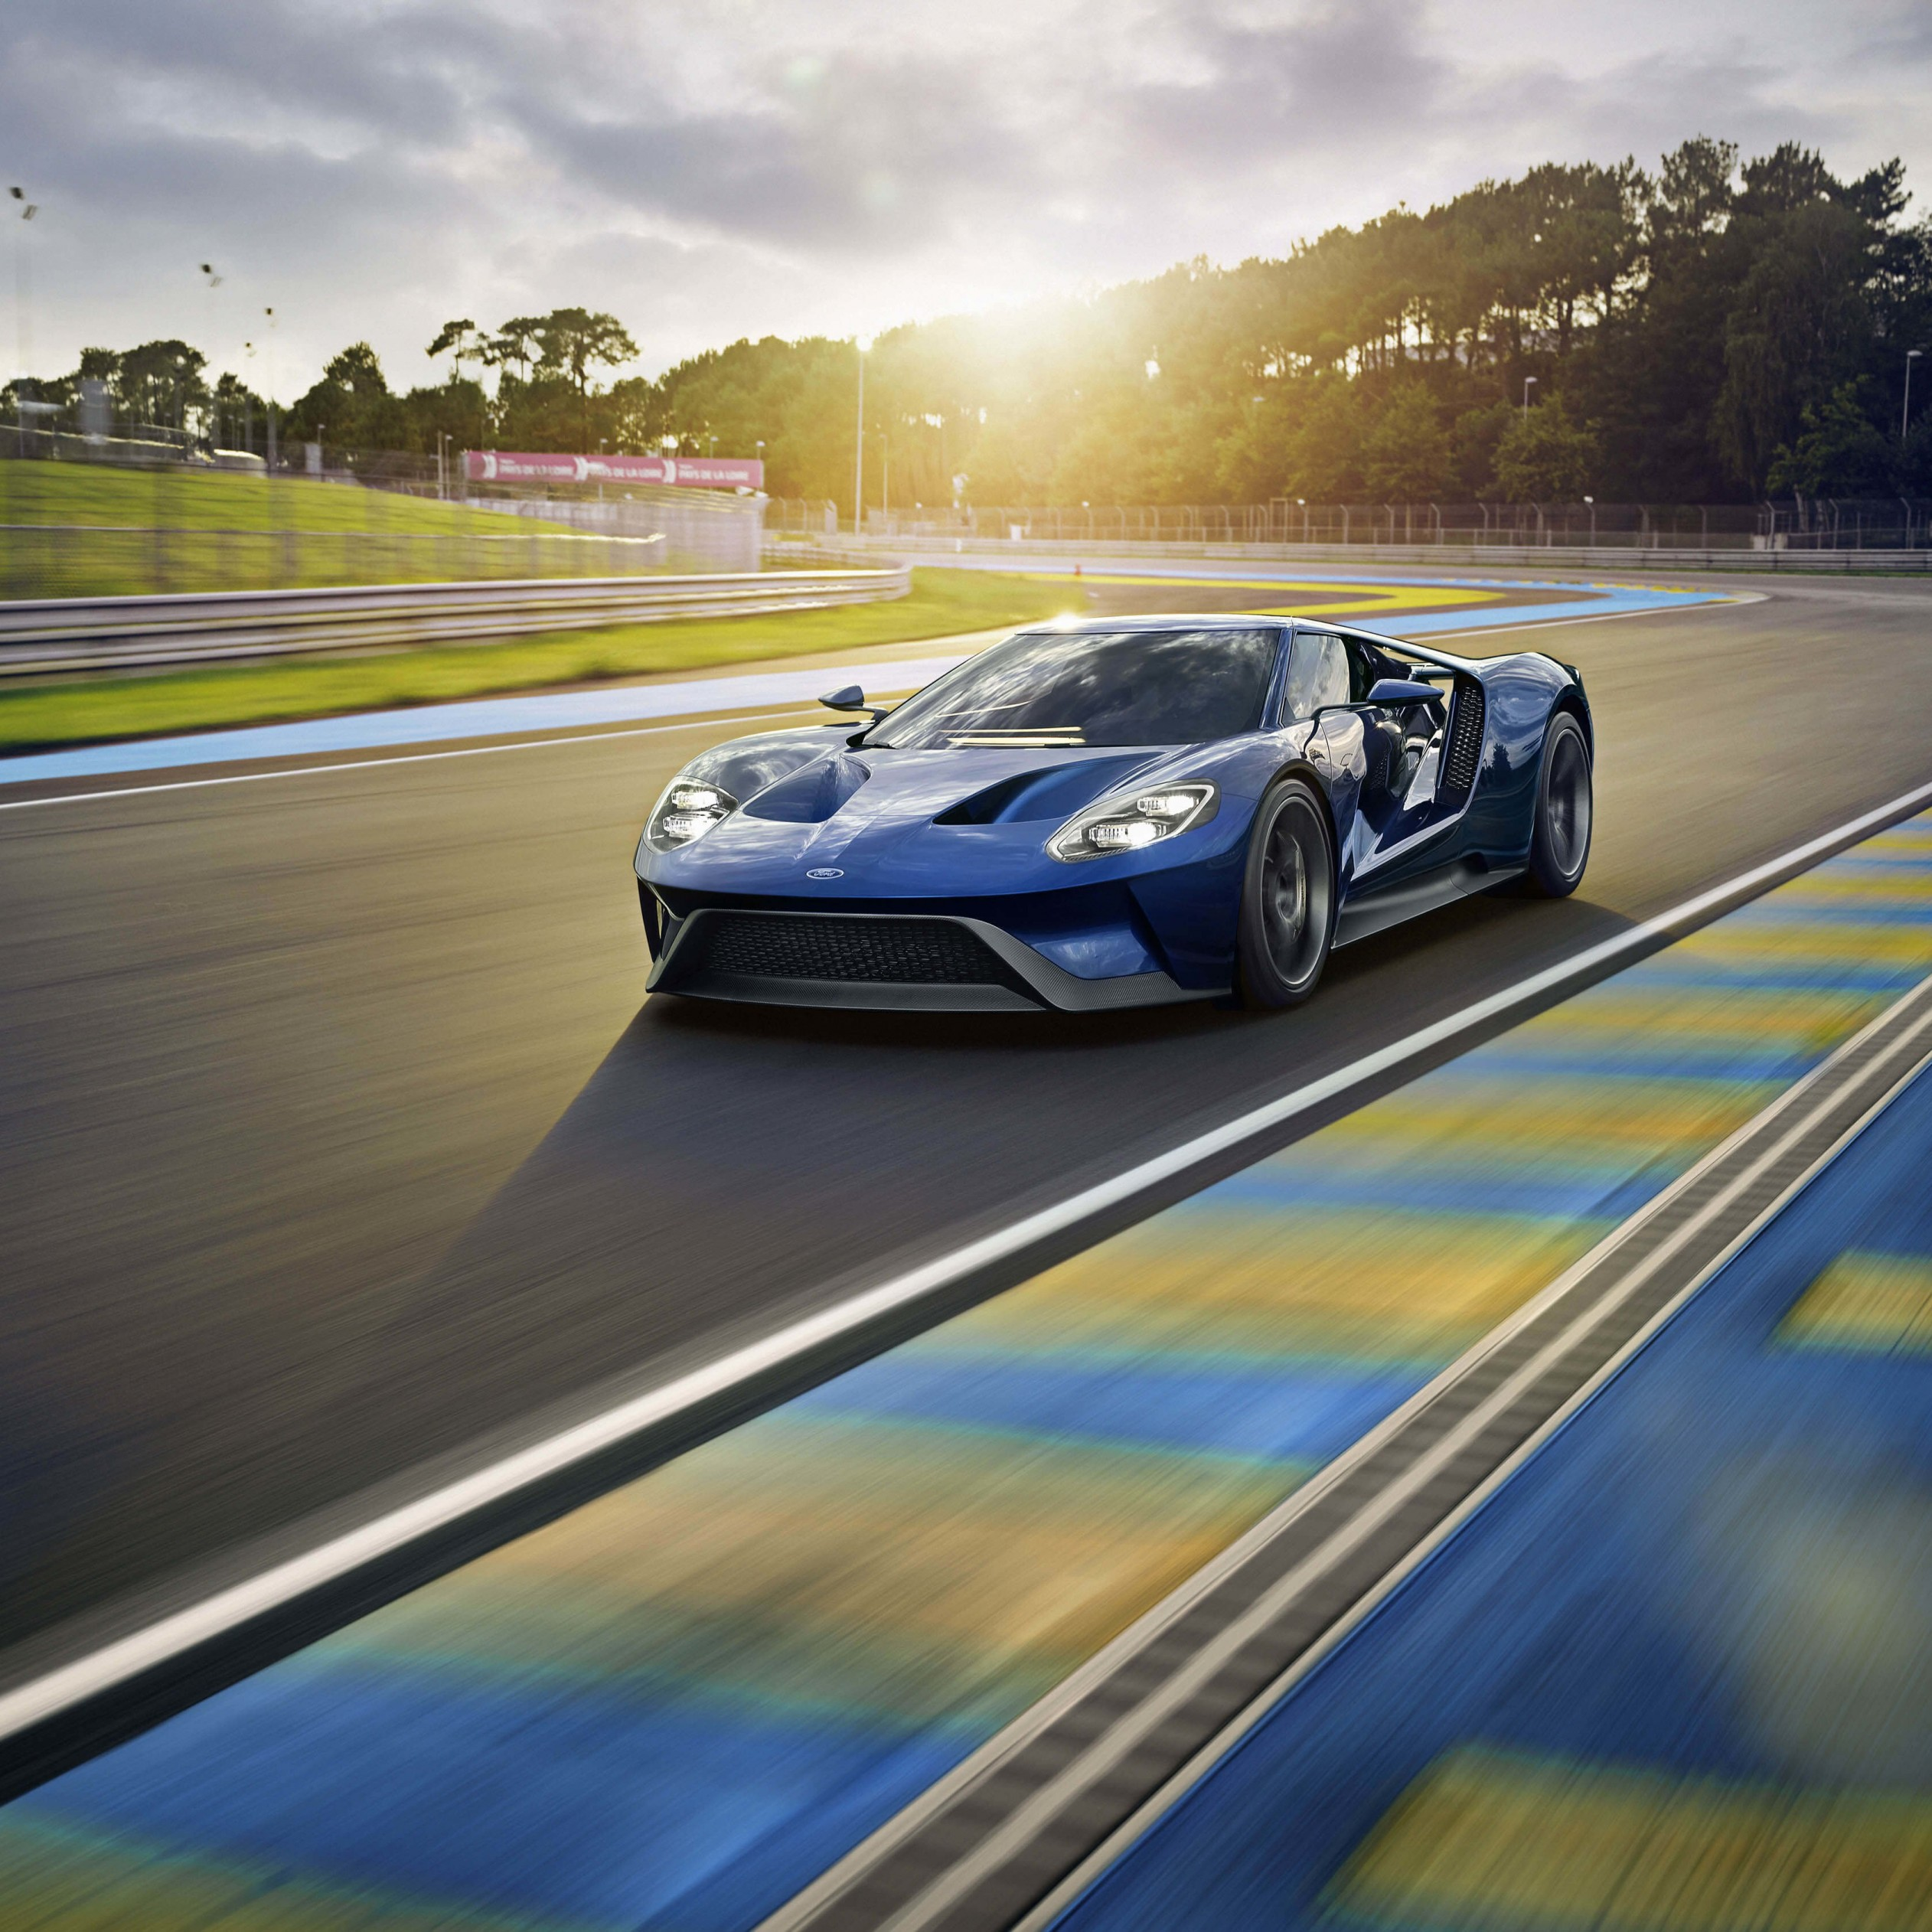 Ford GT Supercar Wallpaper for Apple iPad 4